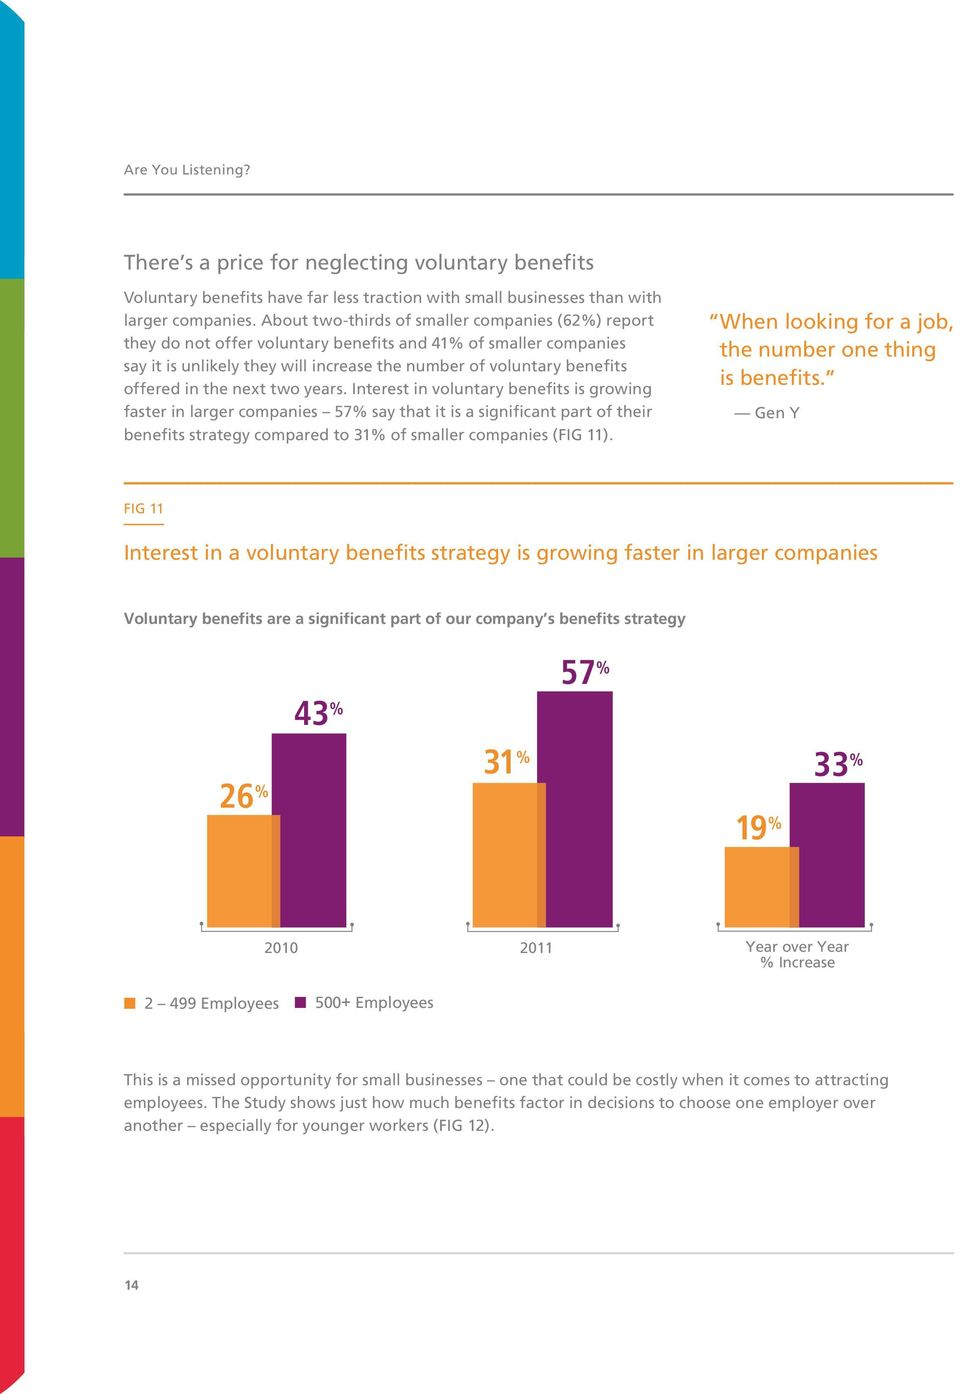 the next two years. Interest in voluntary benefits is growing faster in larger companies 57% say that it is a significant part of their benefits strategy compared to 31% of smaller companies (FIG 11).